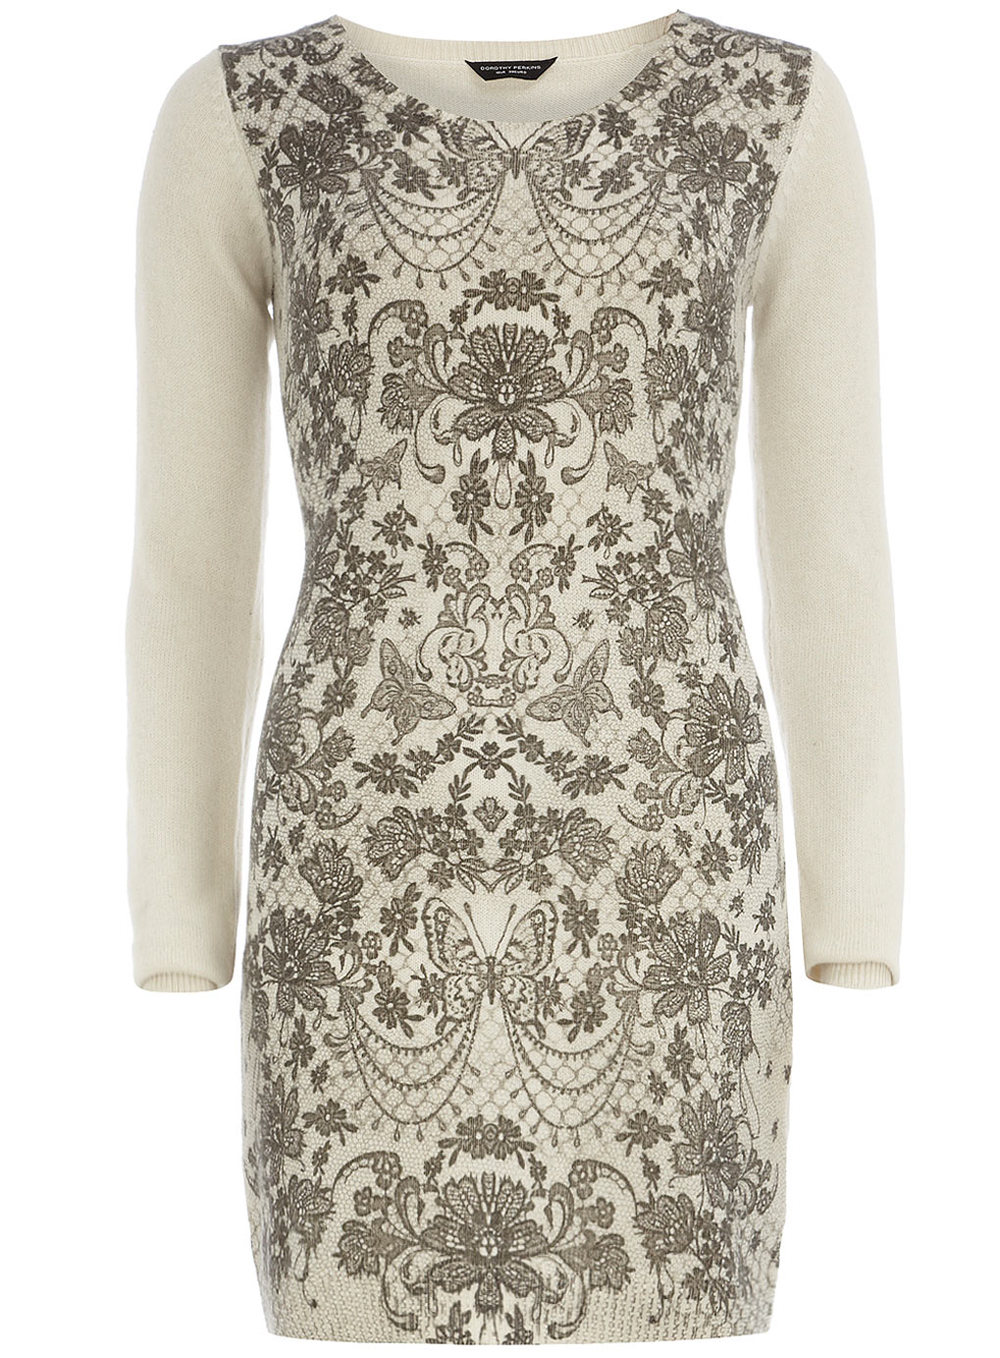 Ivory lace print dress Dorothyperkins.com Price:59